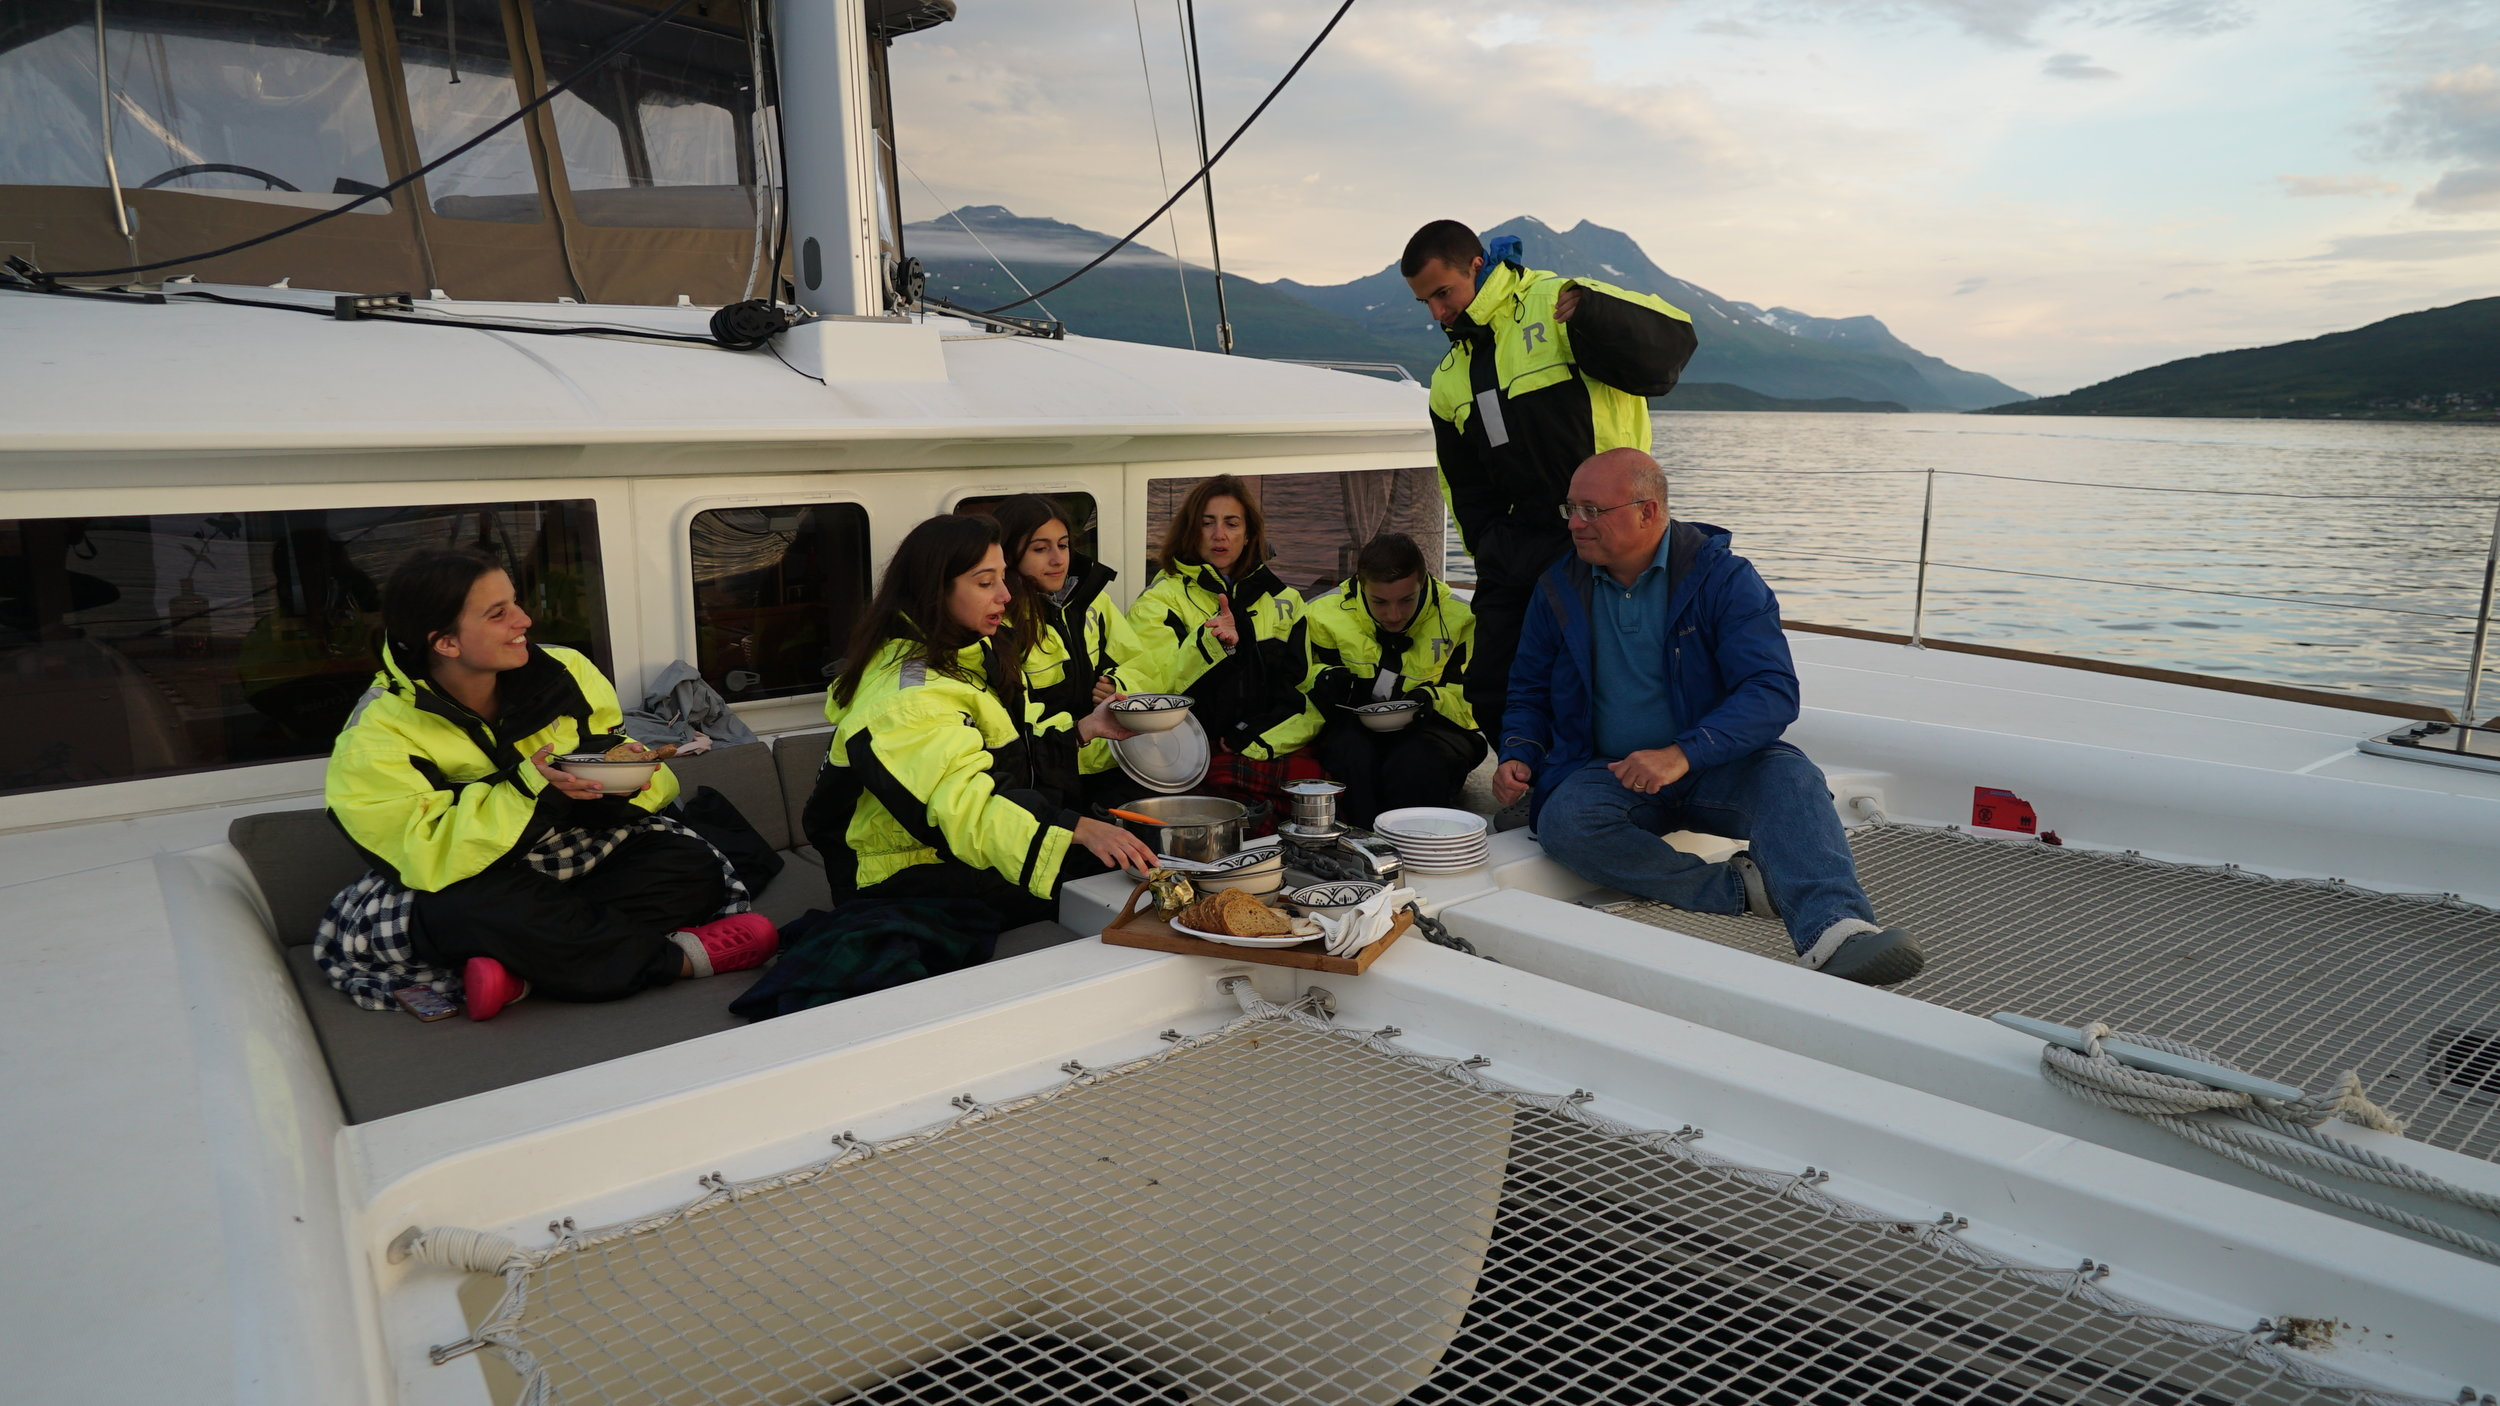 #Midnightcruise | #Tromso |#VIP from US